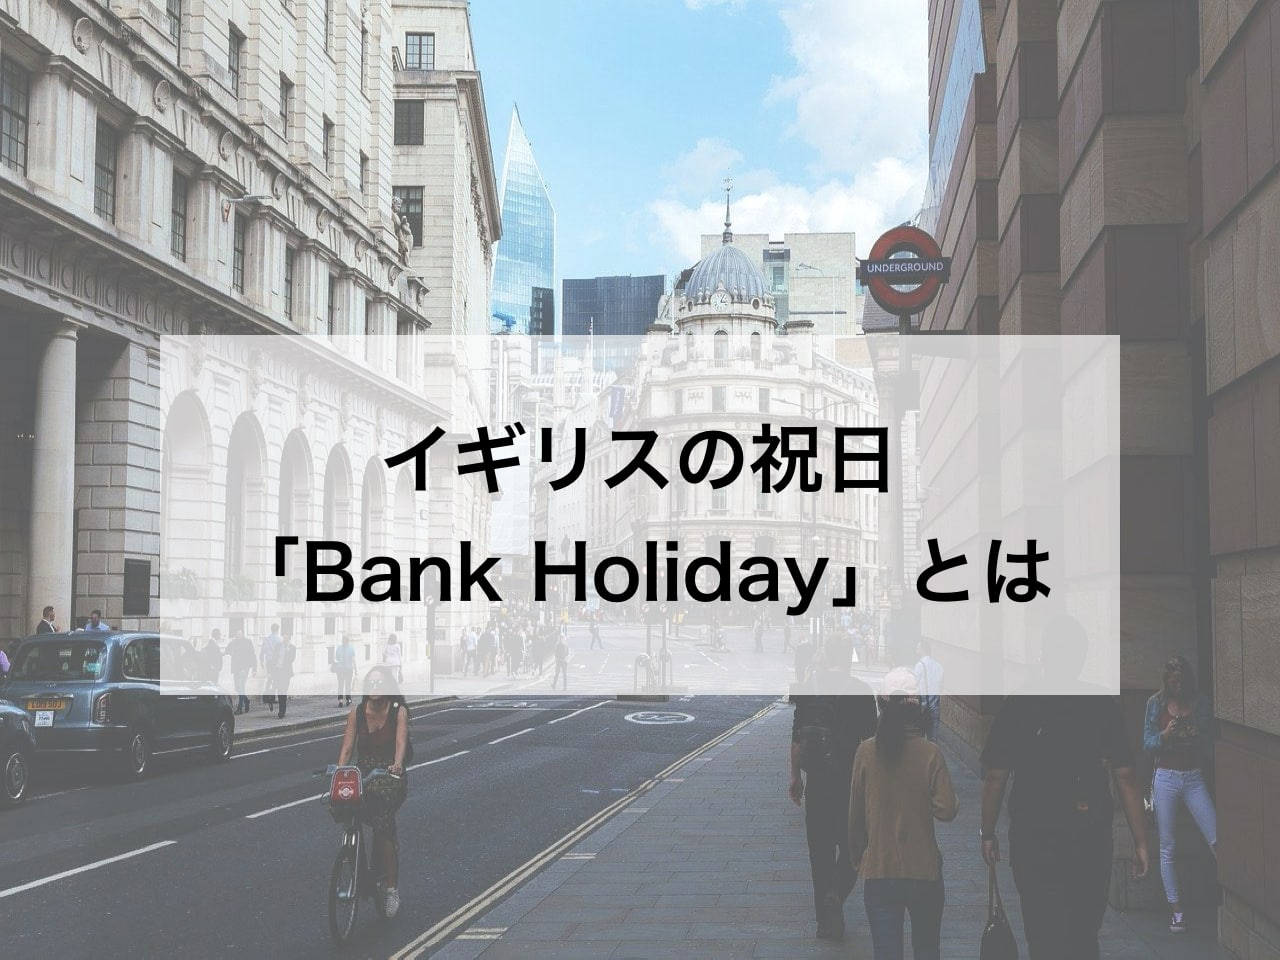 2020_05 minimal traveler, eyecatch, bankholiday